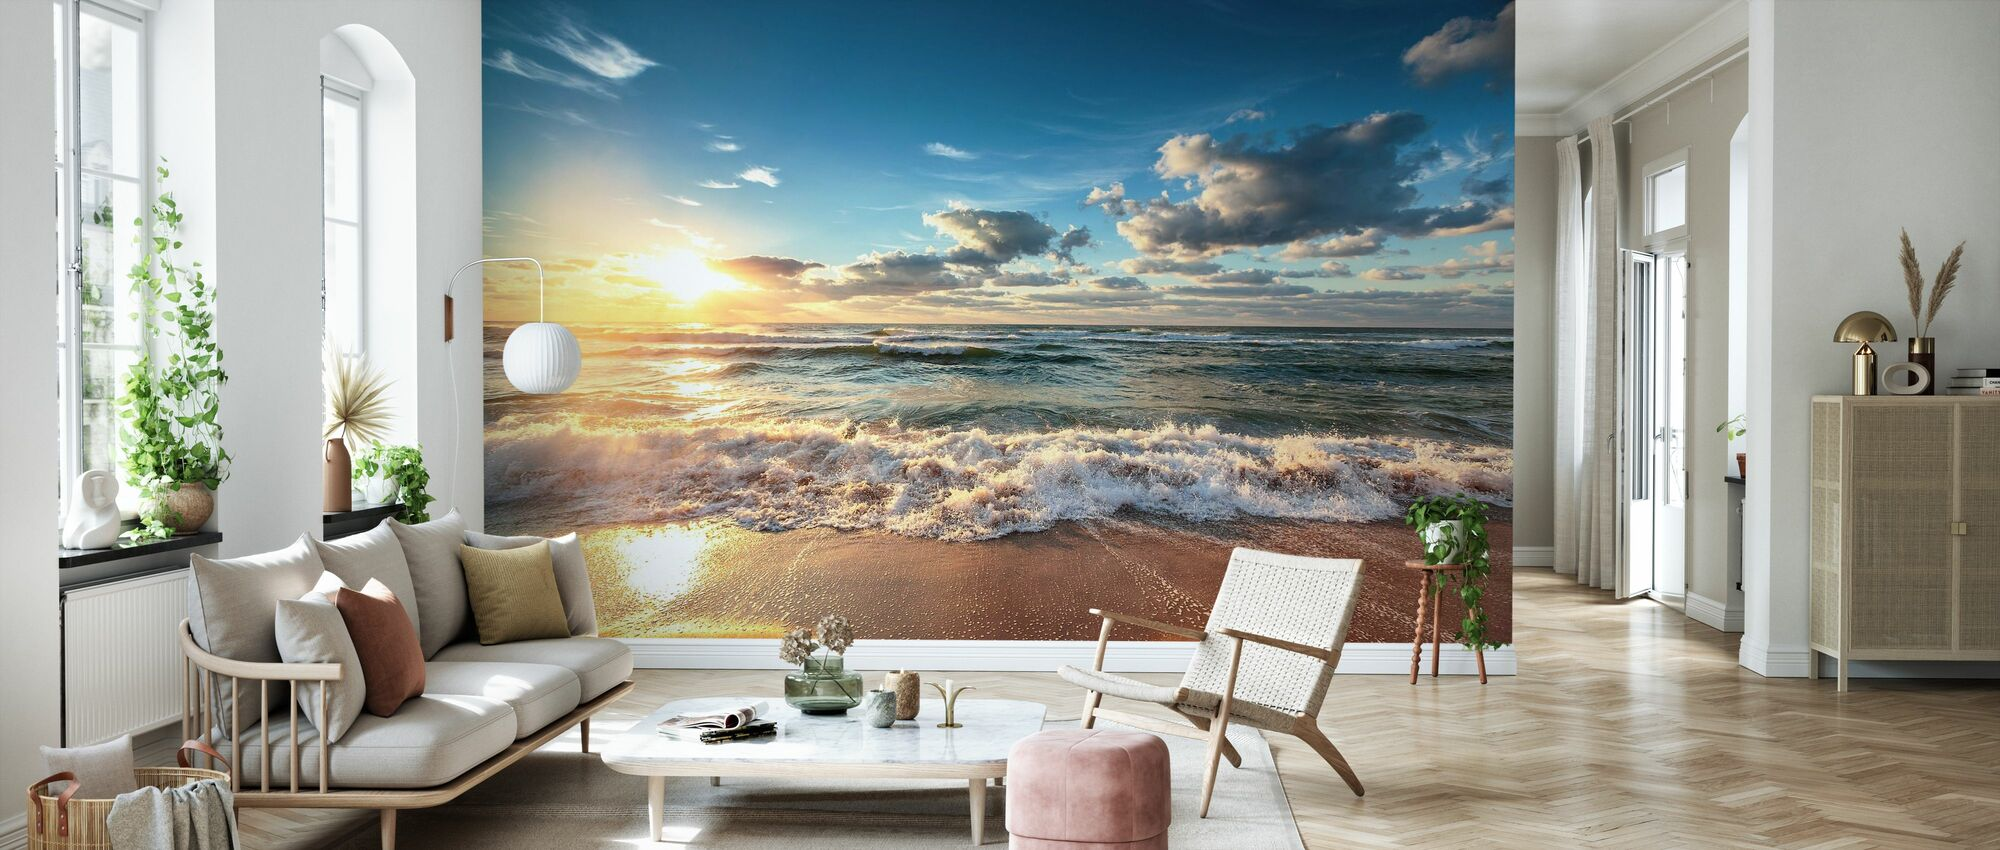 Cloudscape over the Sea - Wallpaper - Living Room